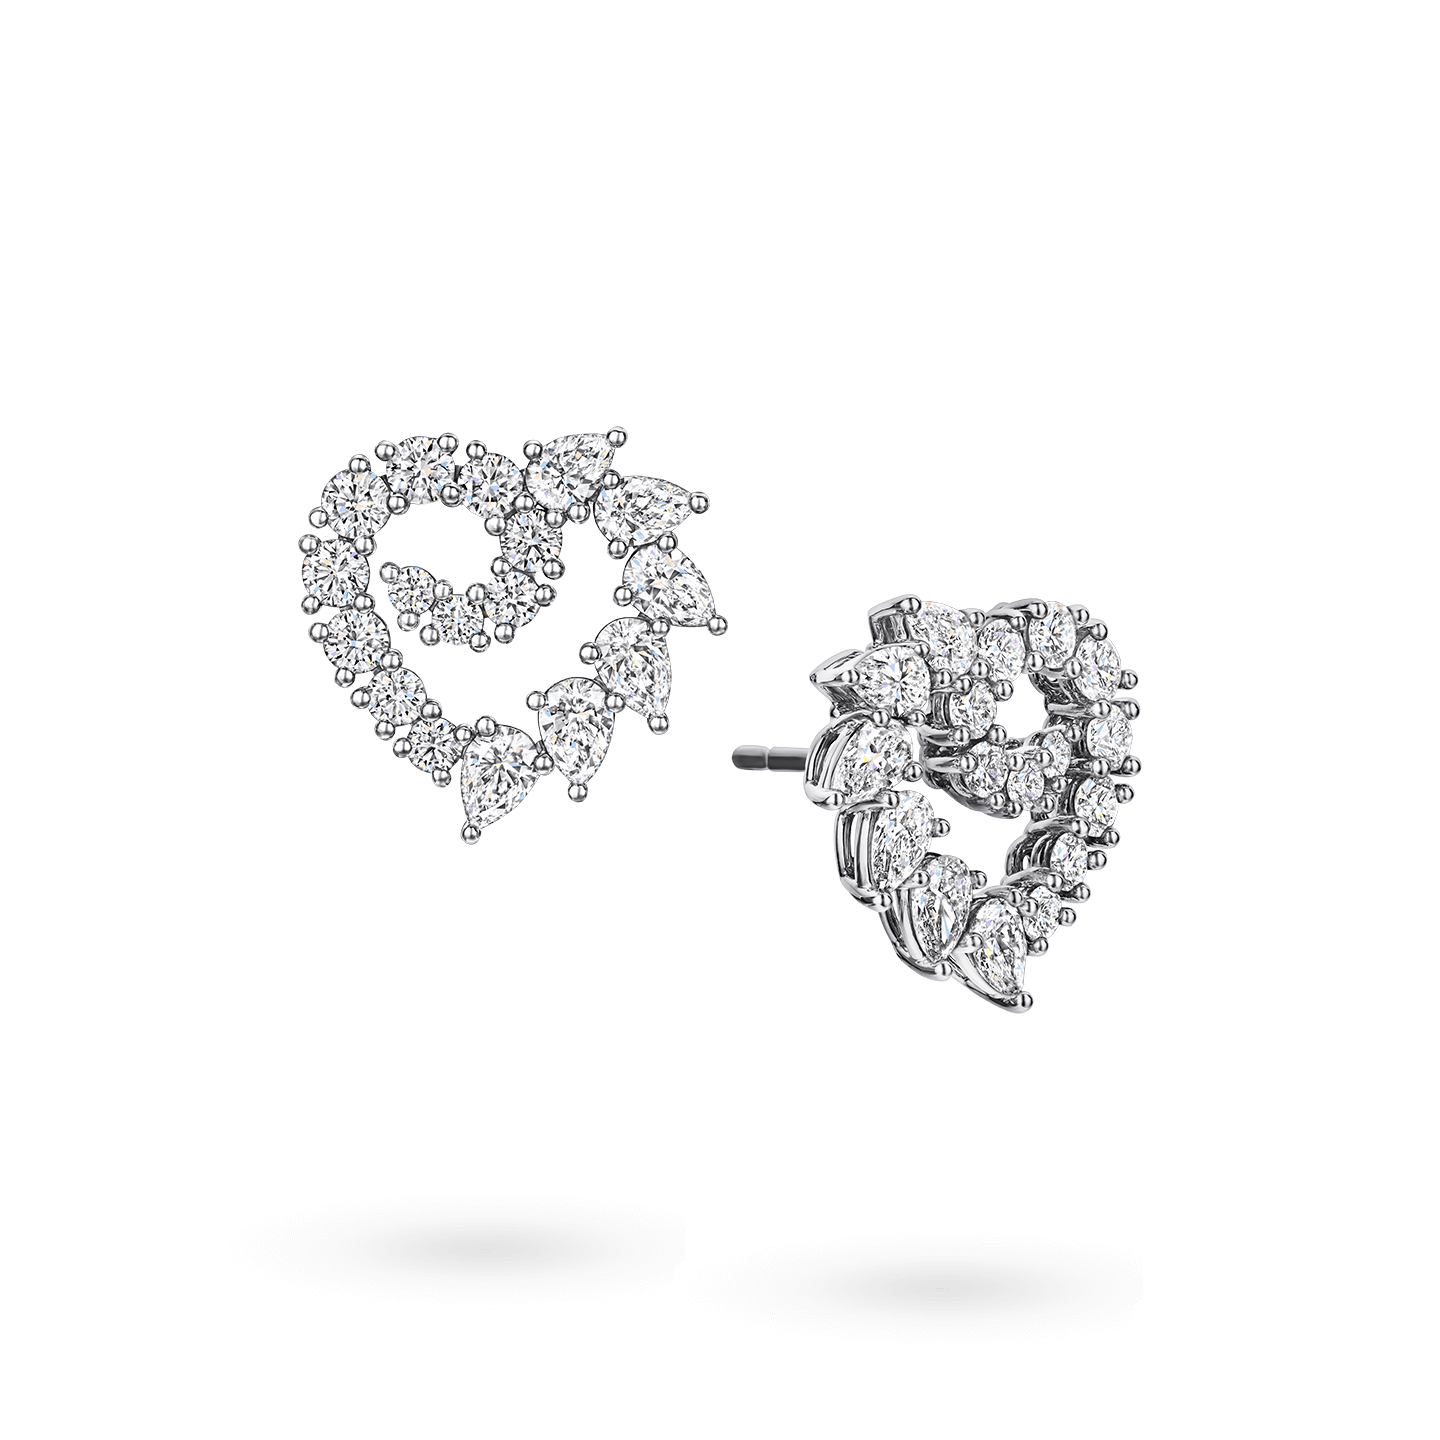 Garland Heart Diamond Earrings, Product Image 2